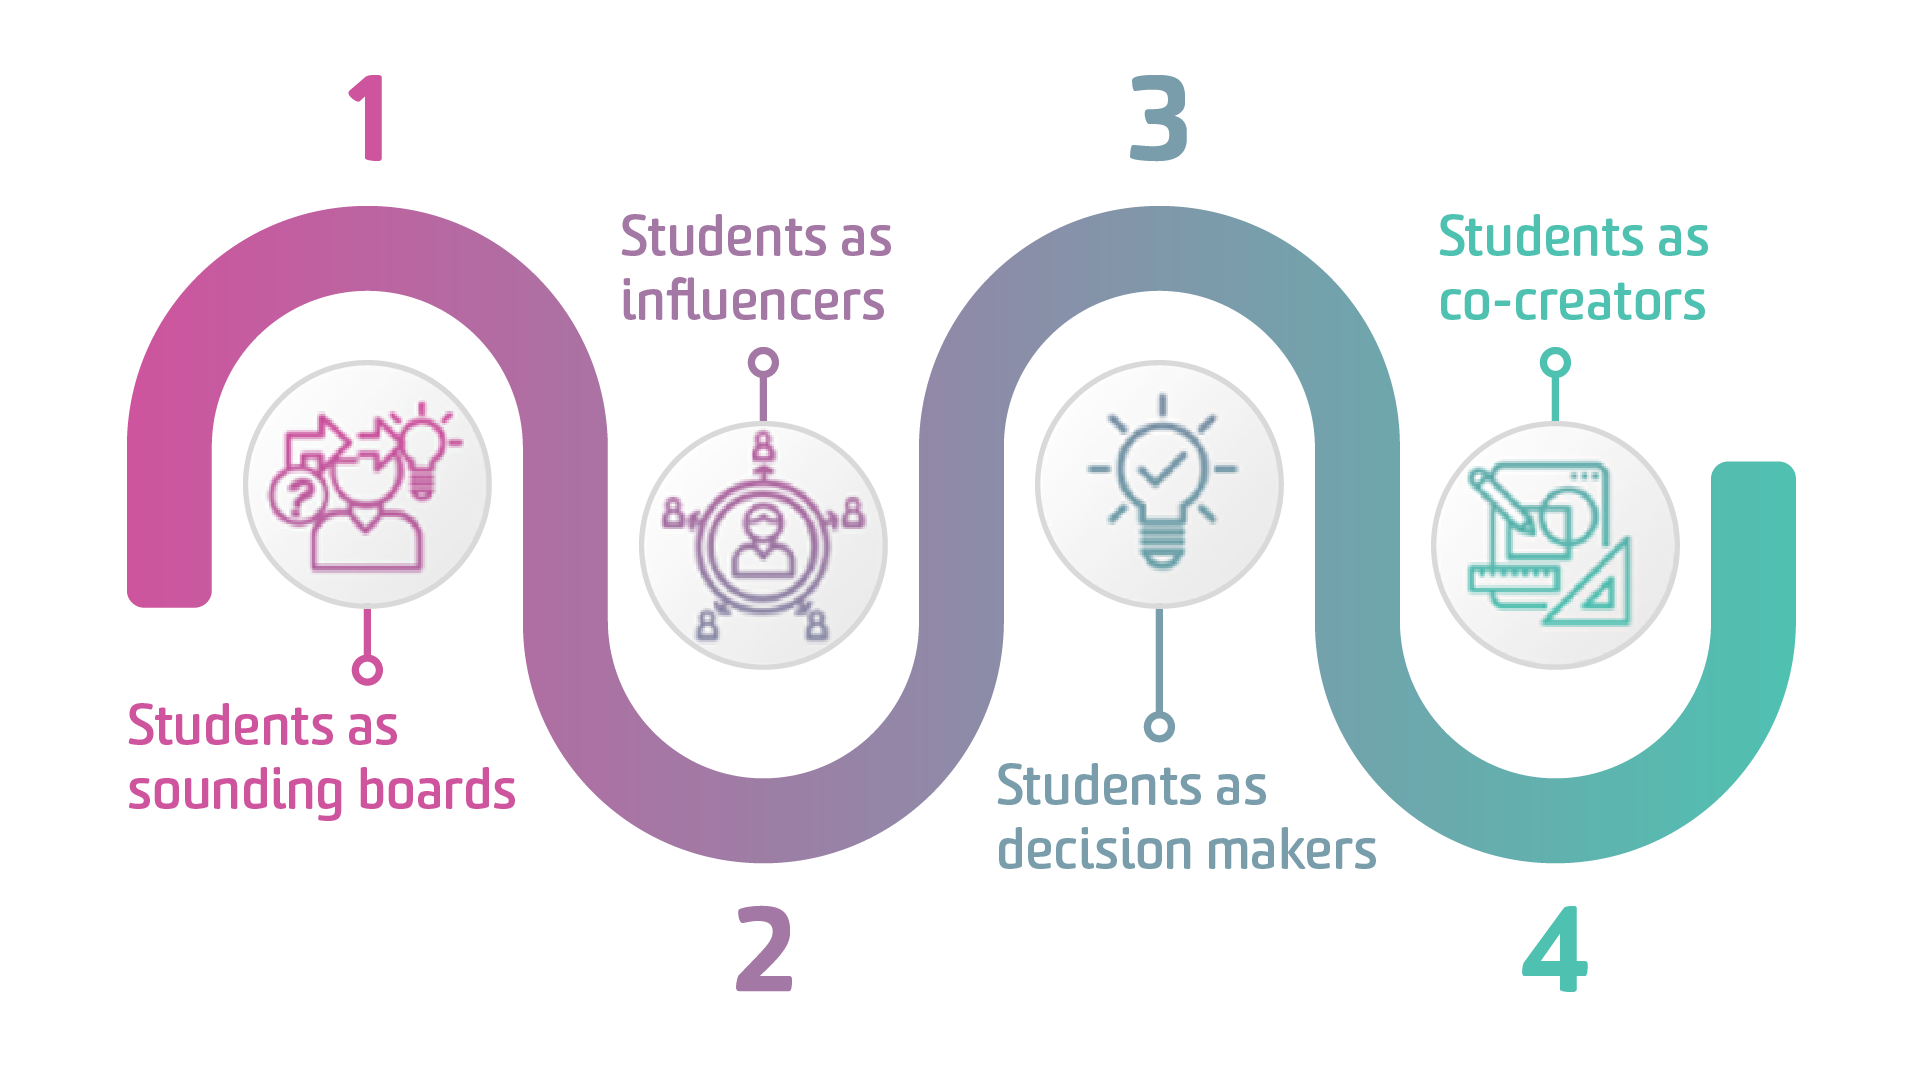 Graphic of four approaches to students as partners. 1. Students as sounding boards. 2. Students as influencers. 3. Students as decision makers. 4. Students as co-creators